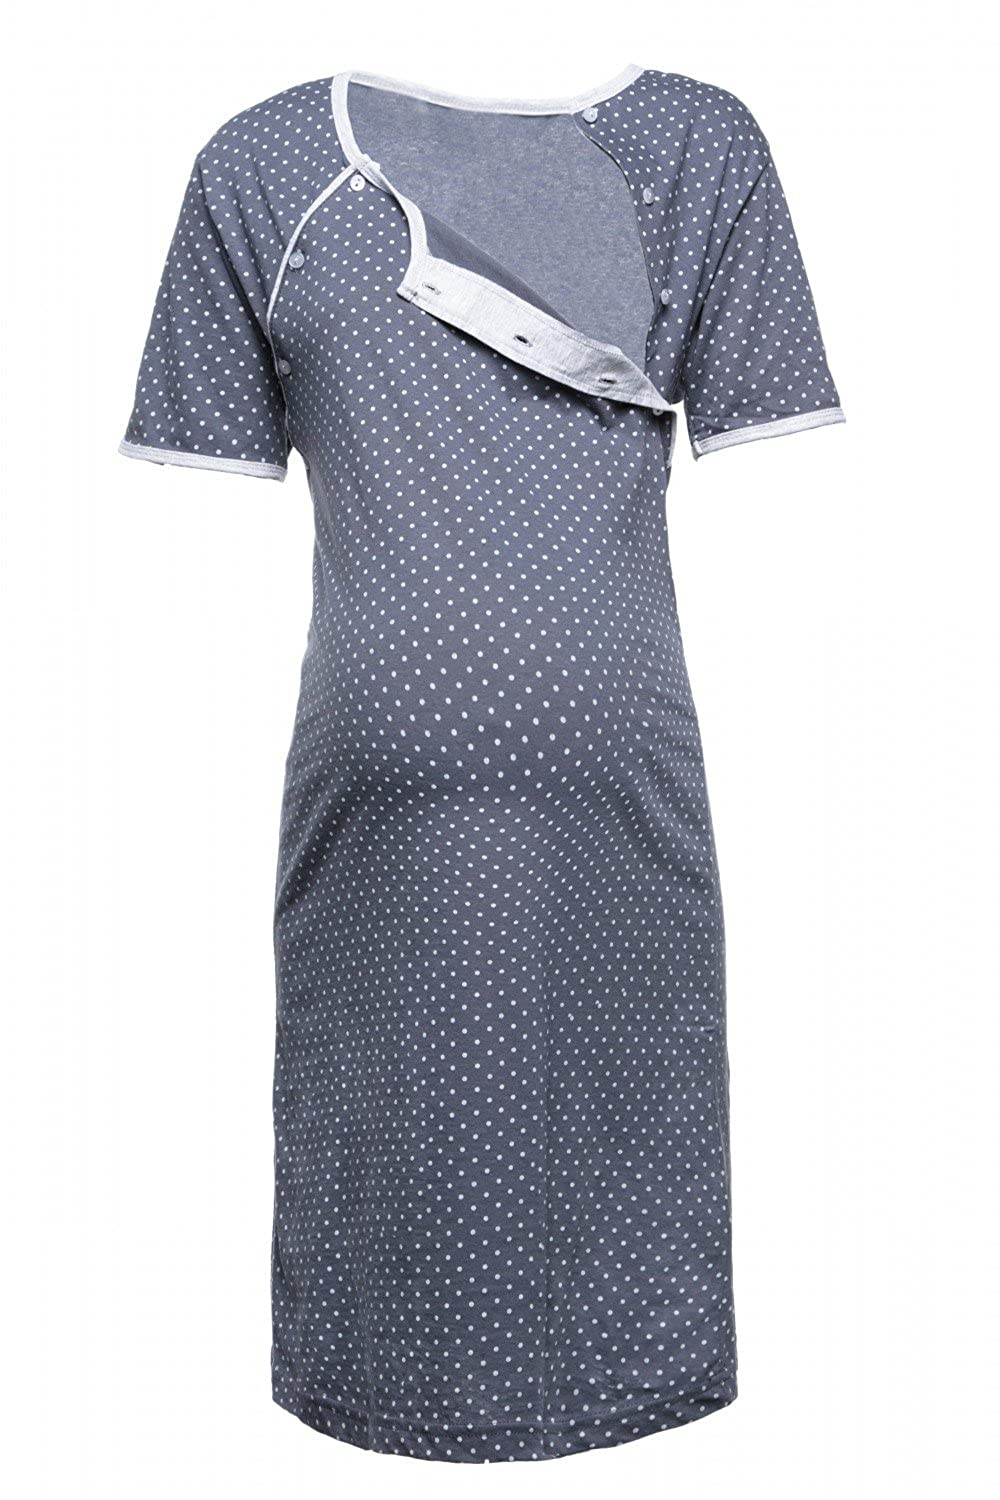 6152756fe9a Clothing & Accessories Happy Mama. Womens Maternity Hospital Gown Nightie  Polka Dot Breastfeeding.